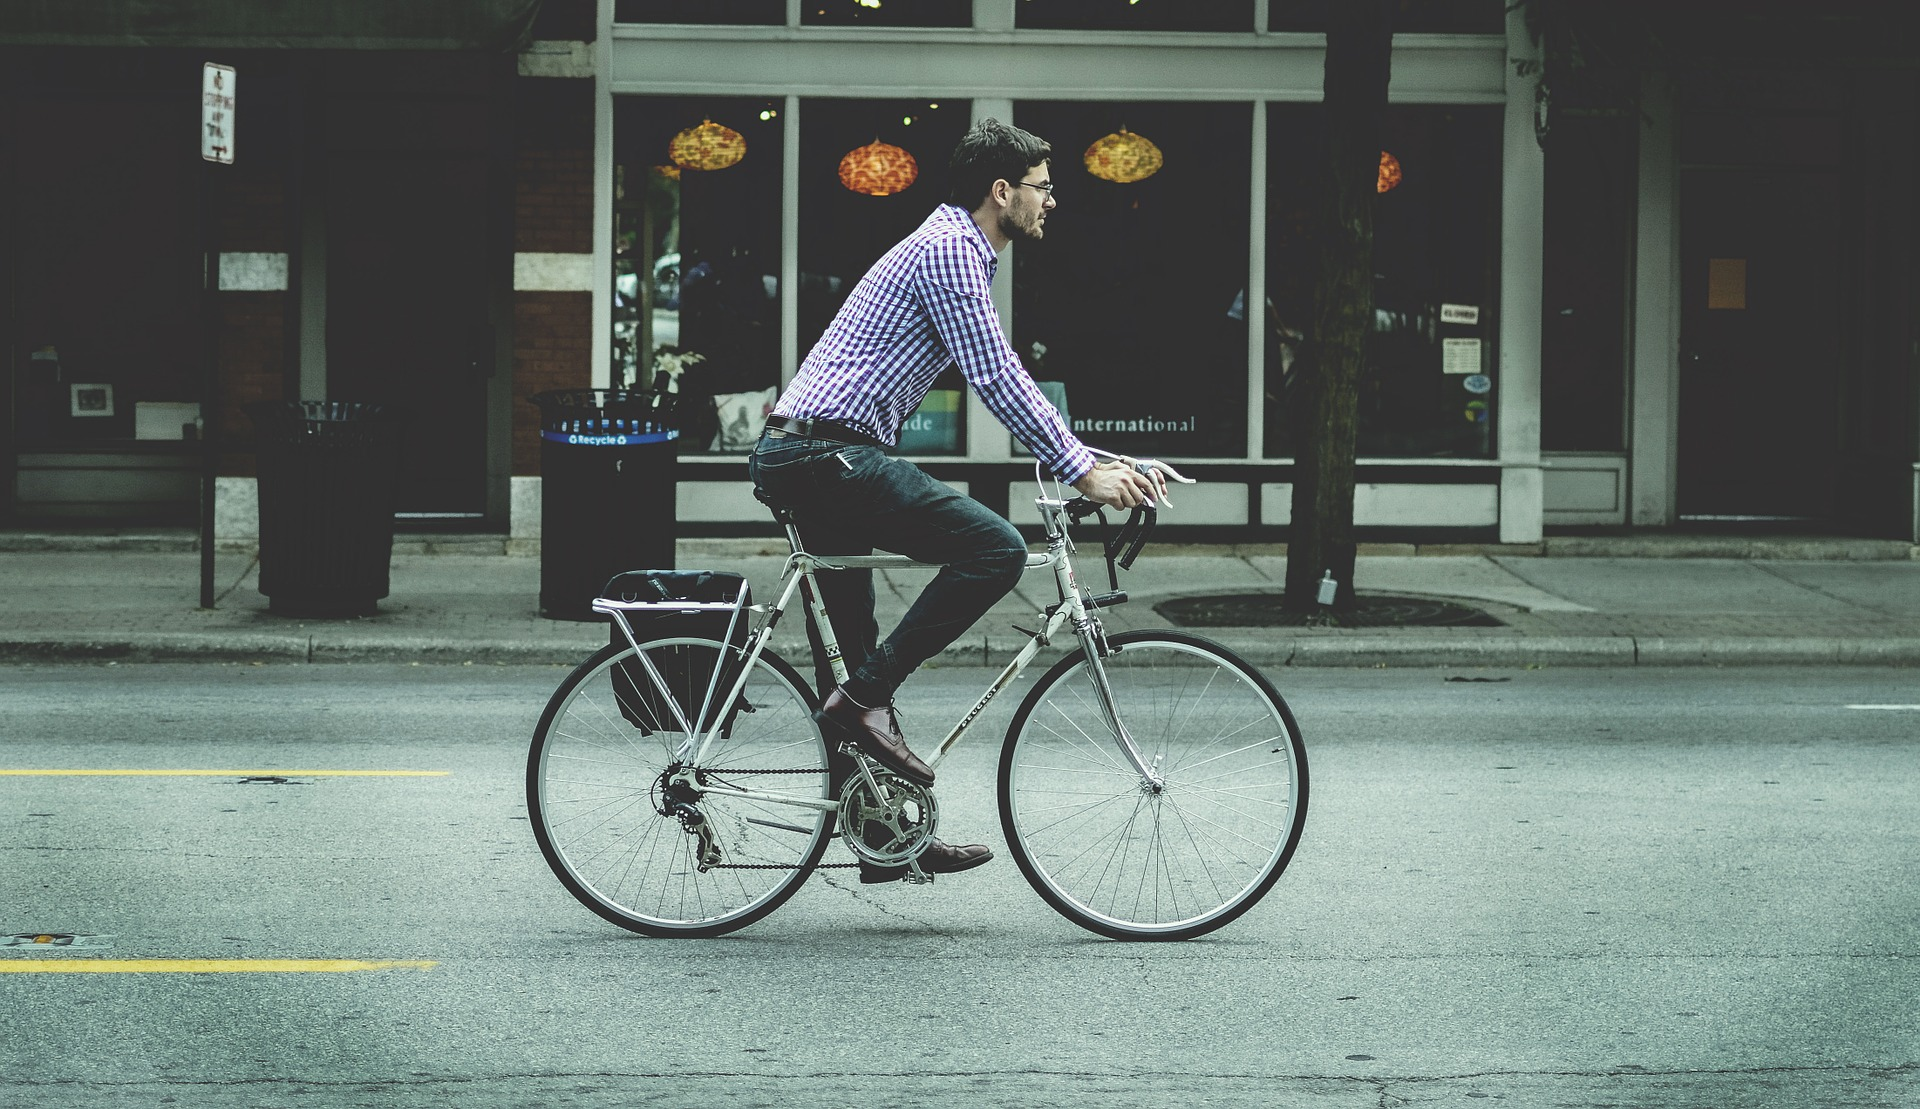 Cycle to work scheme – updated June 2019 to include E-Bikes